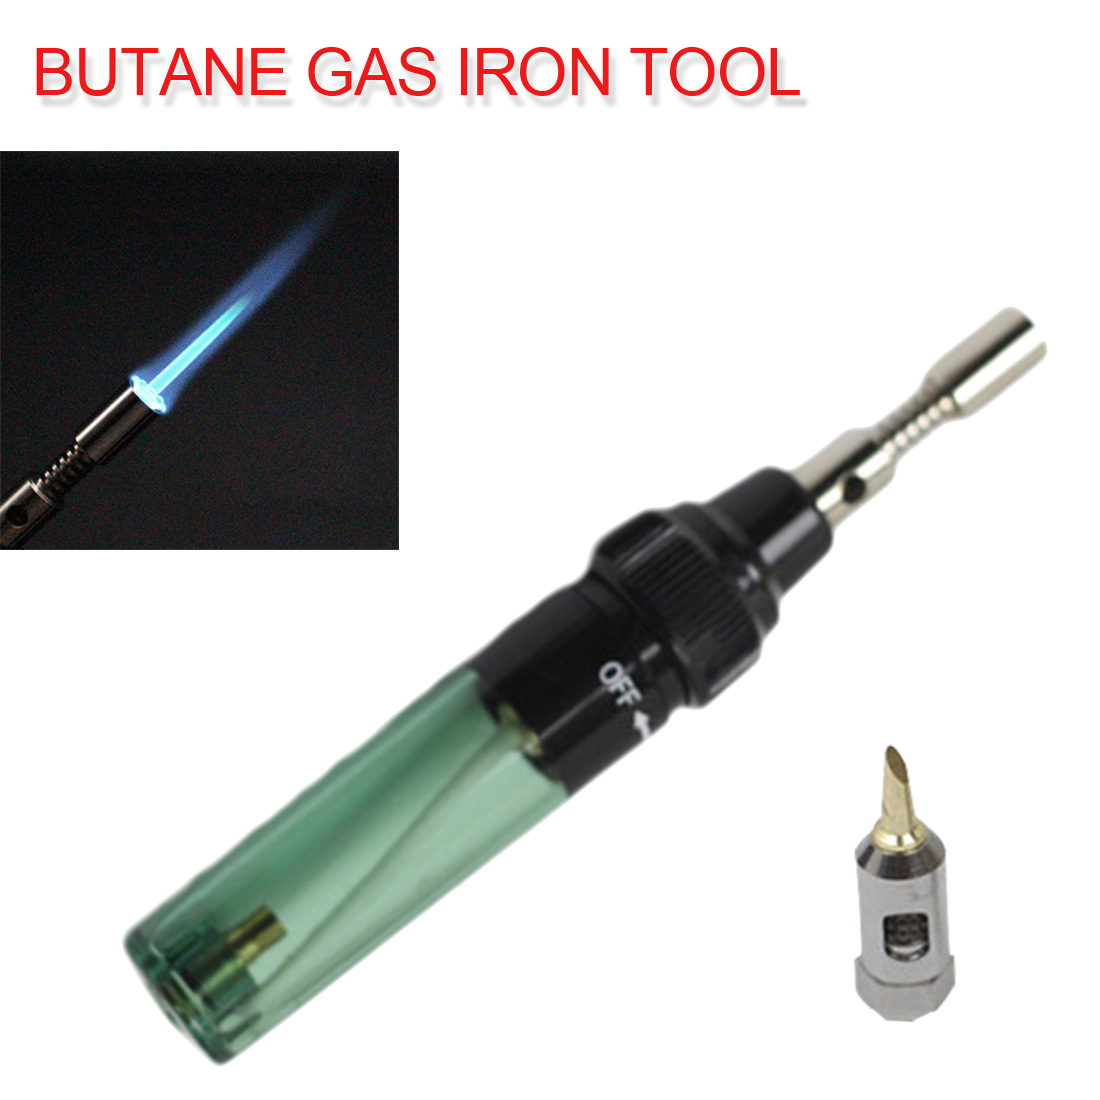 Butane Gas Soldering Solder Torch Iron Tool Pen Shaped Cordless Torch DIY/ Soldering Iron Pen Type Gas 3 In1 MT-100